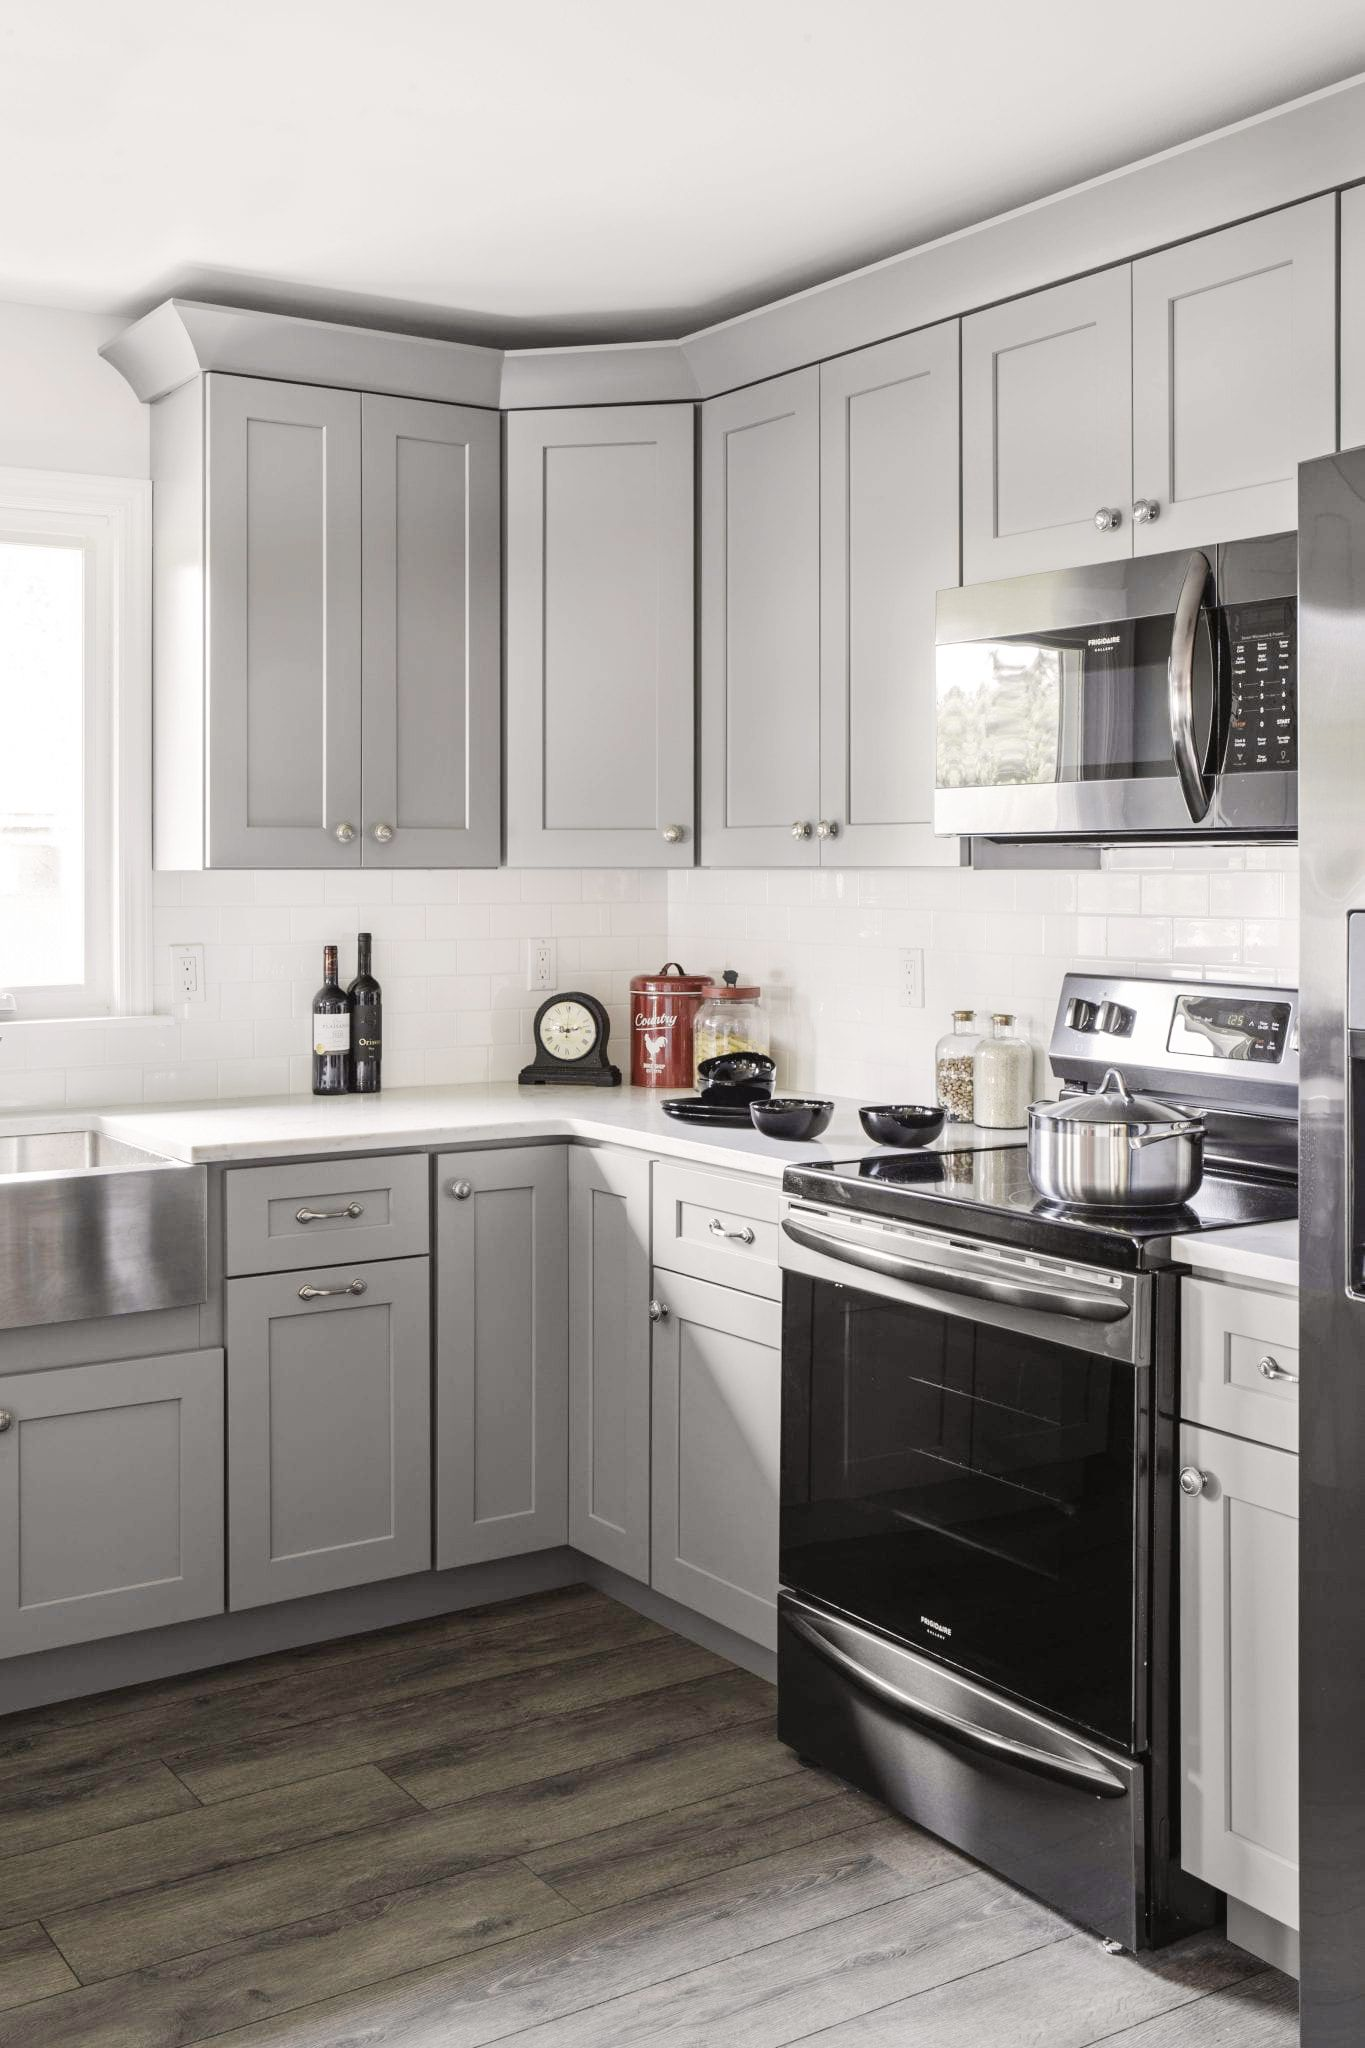 Home Cabinet Westbury S5 Style Castle Grey All Wood Maple Kitchen Cabinets In 2020 Kitchen Remodel Small Kitchen Decor Inspiration Maple Kitchen Cabinets